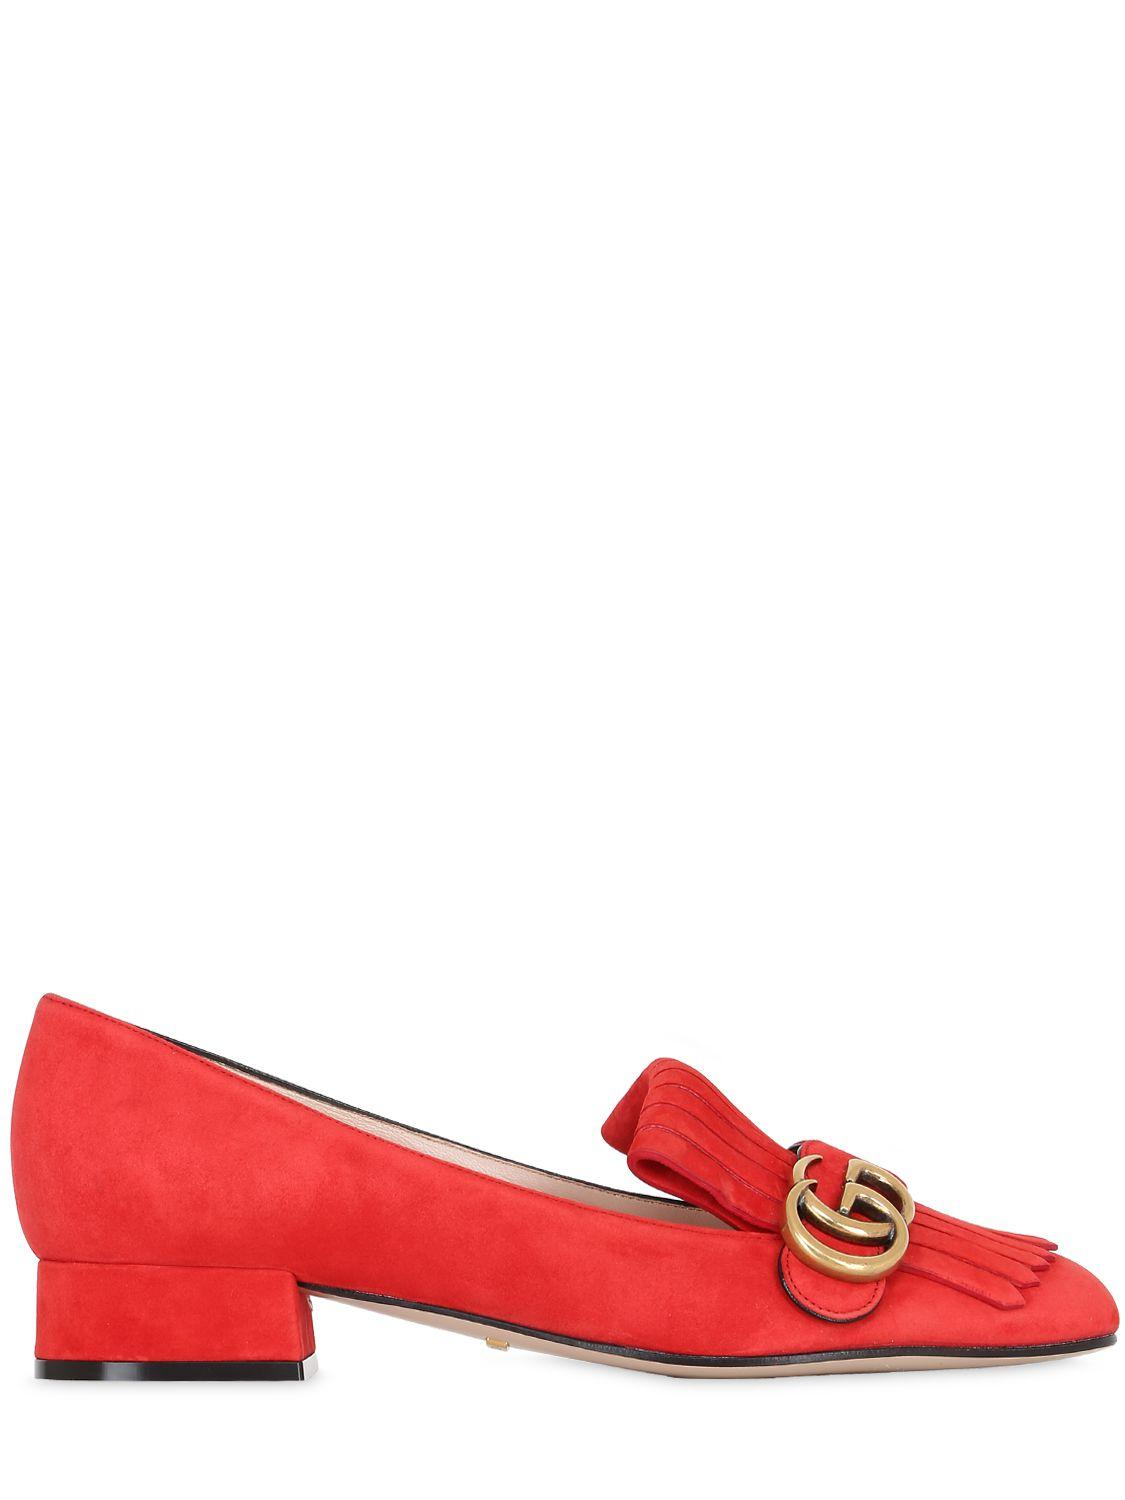 c14f8c277c9 Gucci 25mm Marmont Gg Fringed Suede Pumps in Red - Lyst